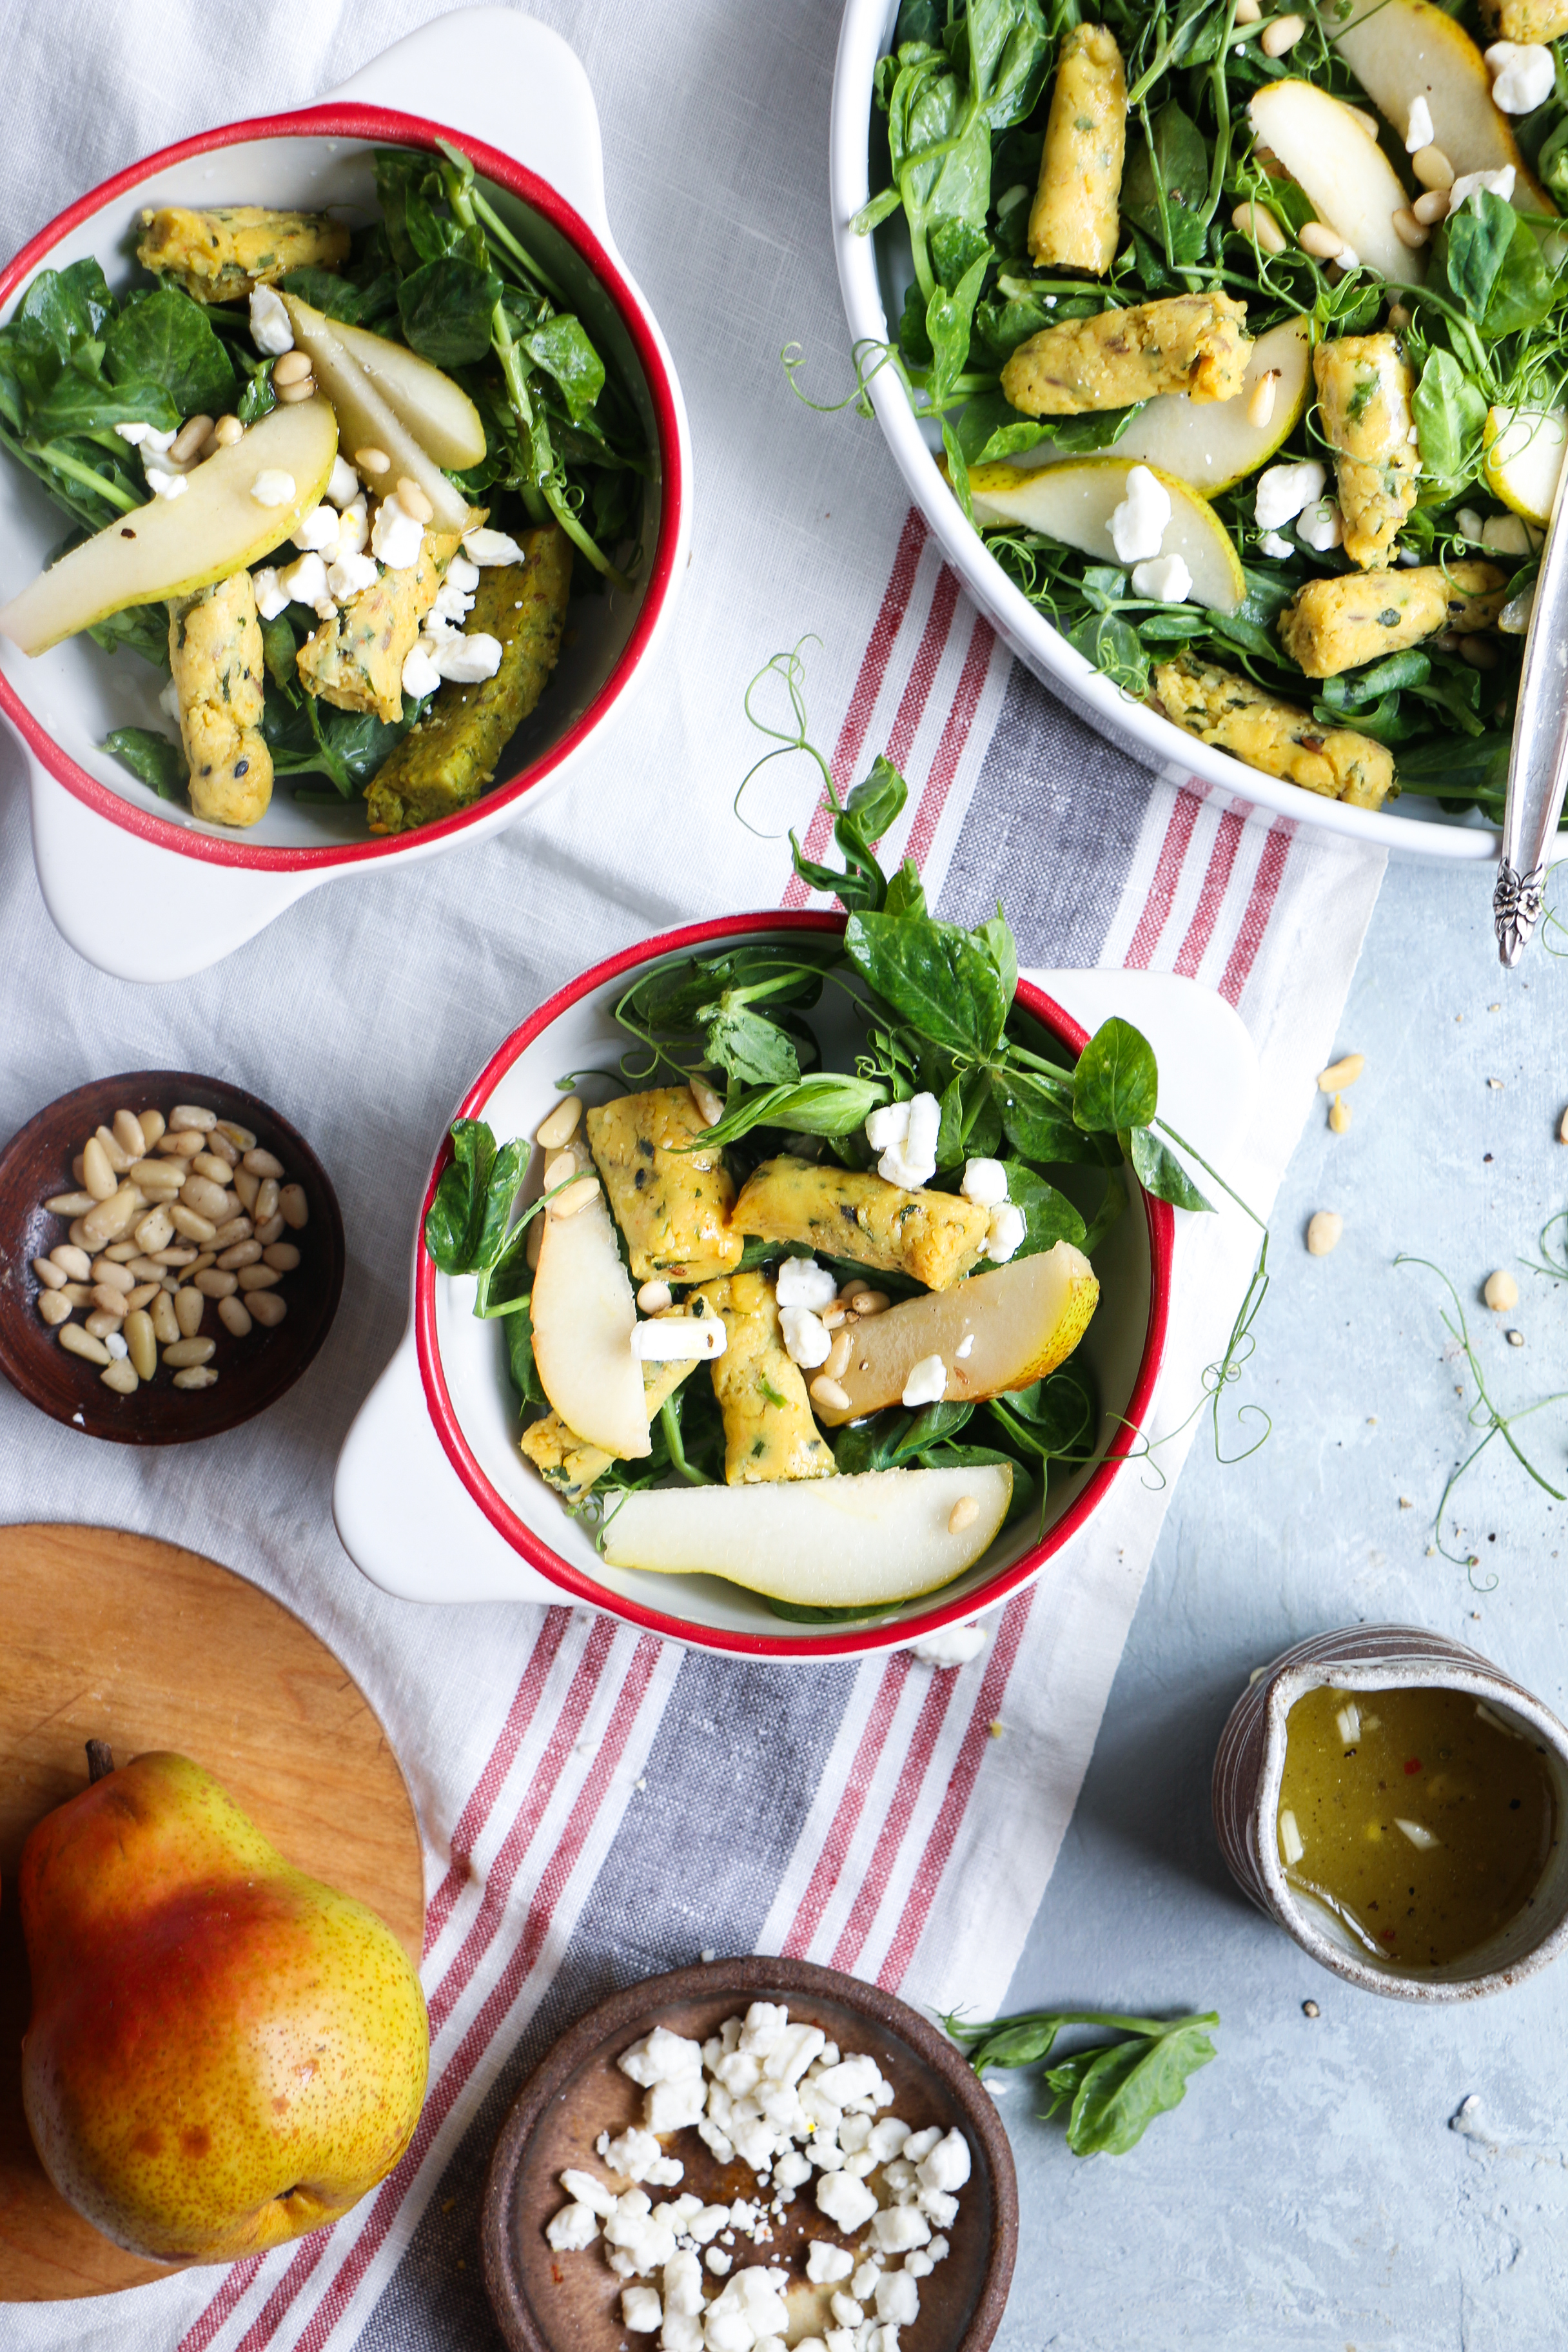 Spicy Chickpea rolls/Muthiya salad with peach and goat cheese foodfashionparty  #healthysalad #indiansalad